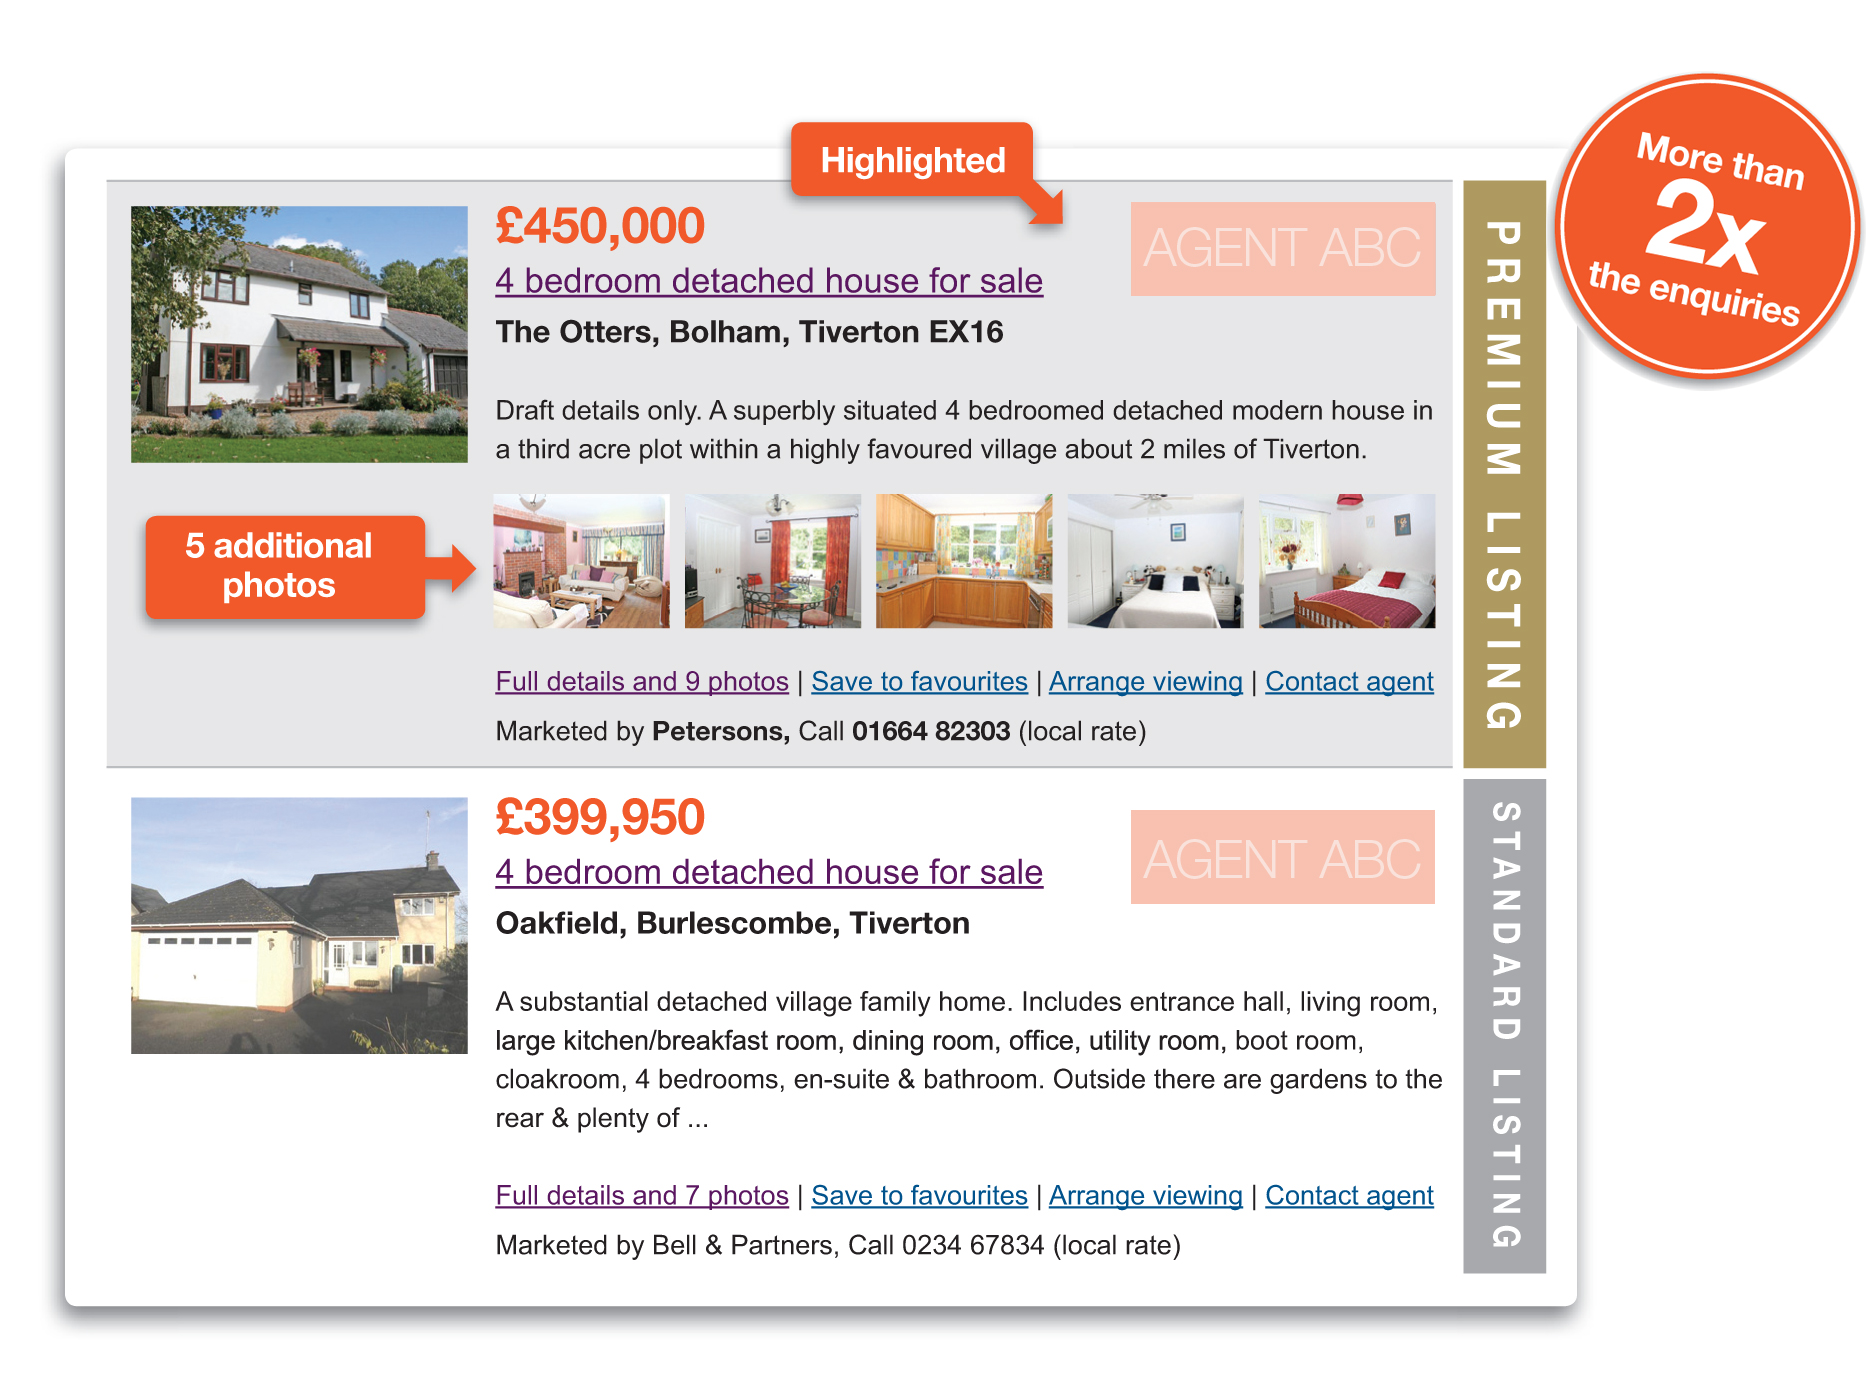 zoopla launches premium listings for estate agents and developers